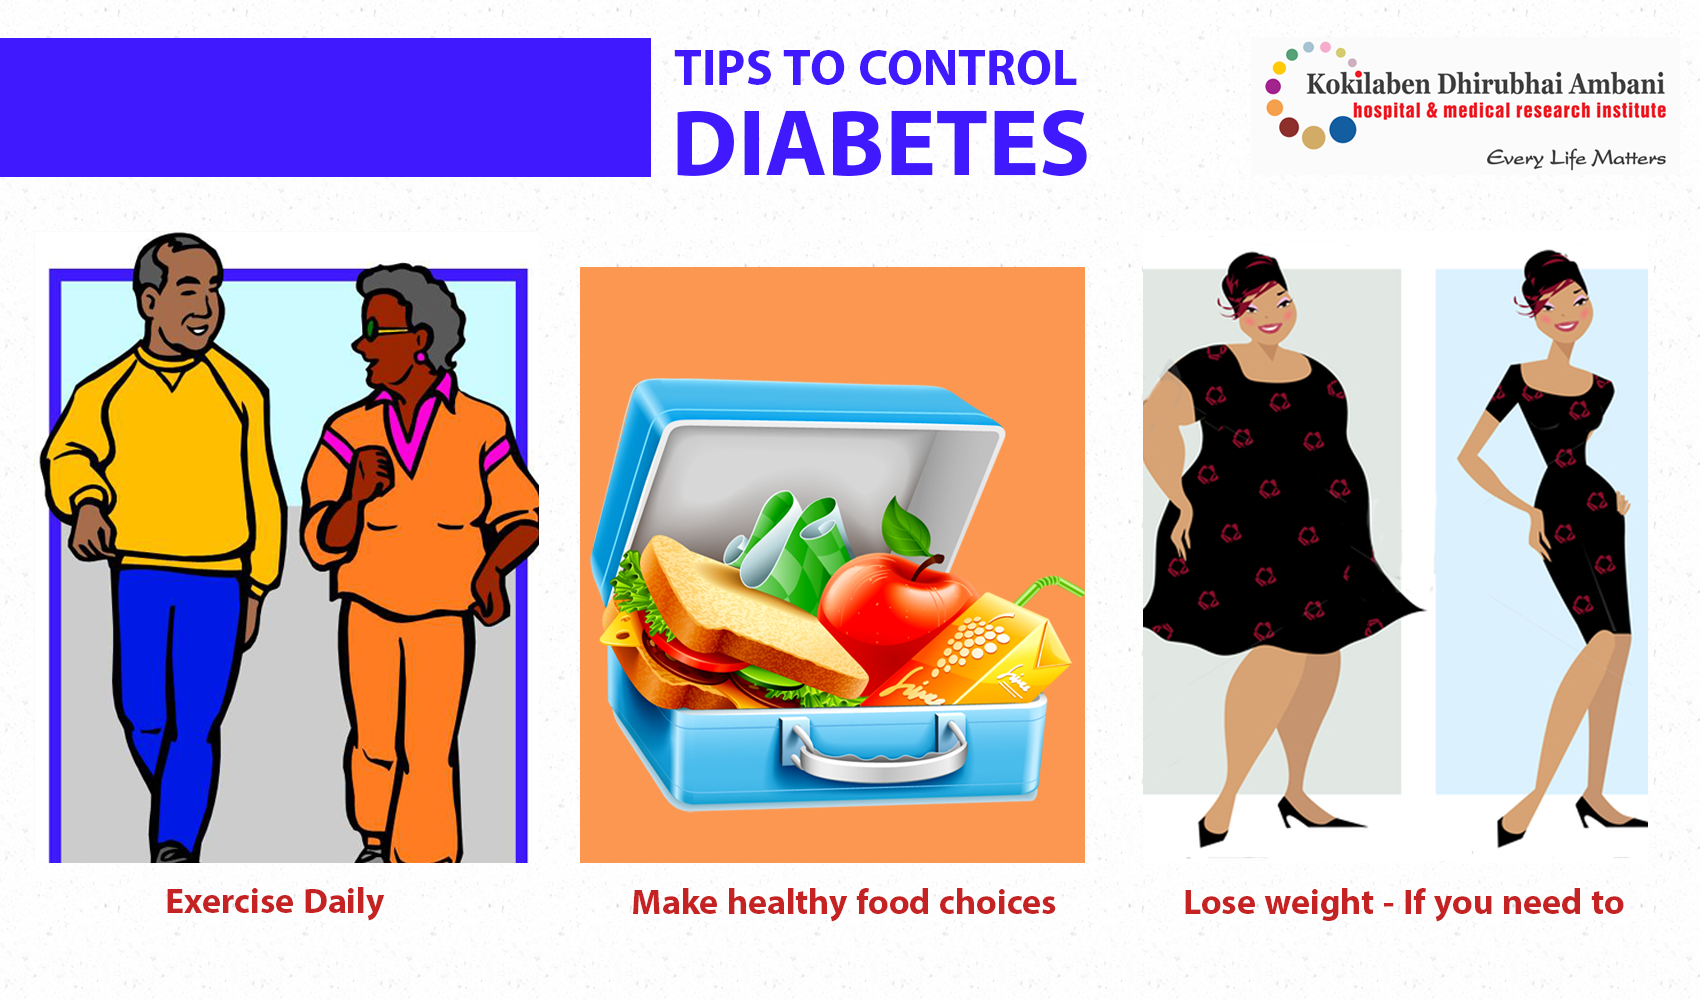 Tips to control Diabetes